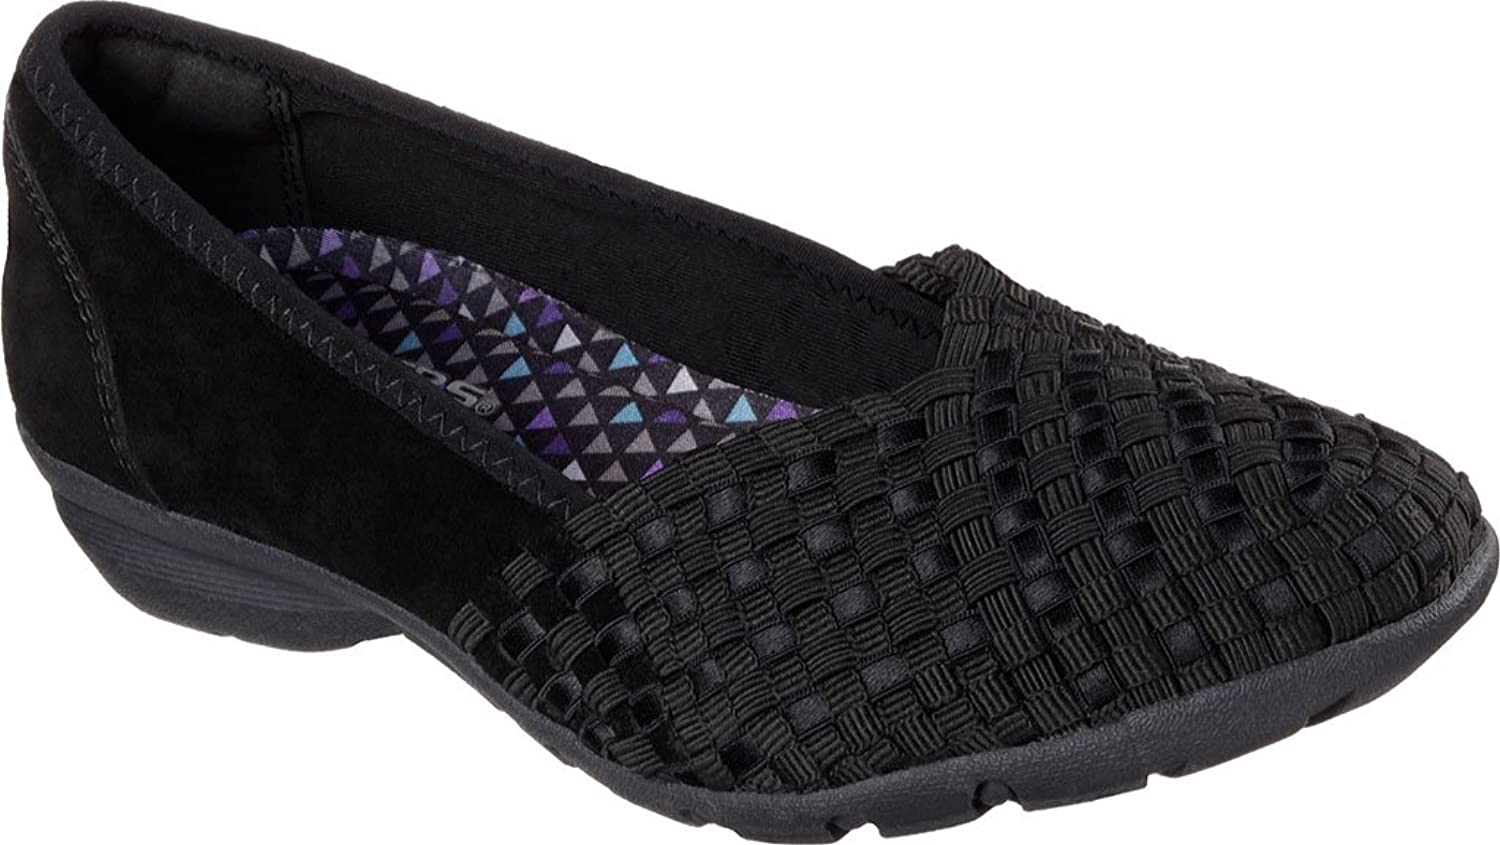 Skechers Women's Relaxed Fit Career Puzzling Loafer